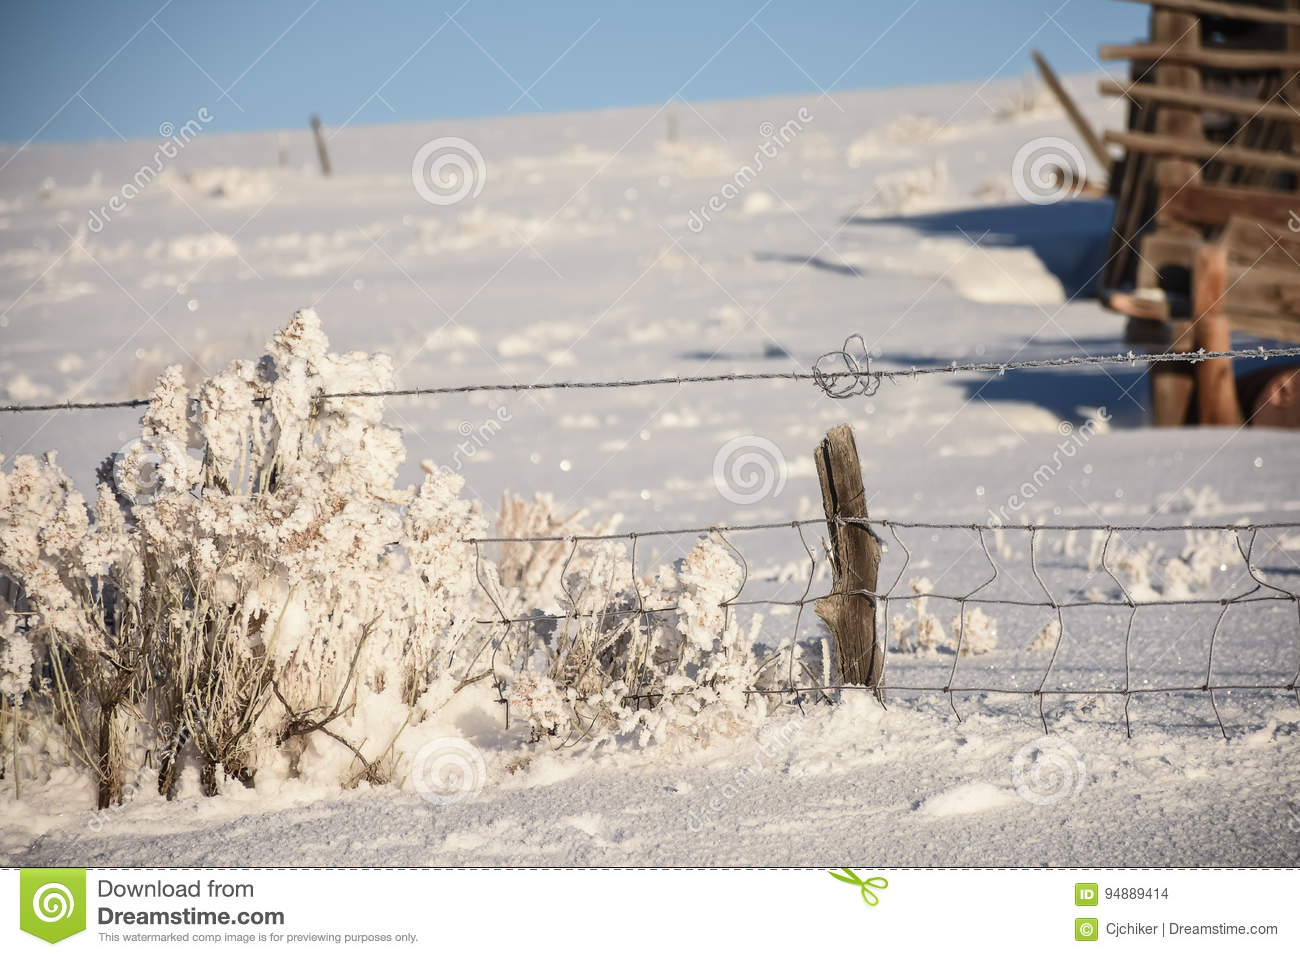 Twisted Wire By Rabbitbrush In Winter Stock Photo - Image of winter ...